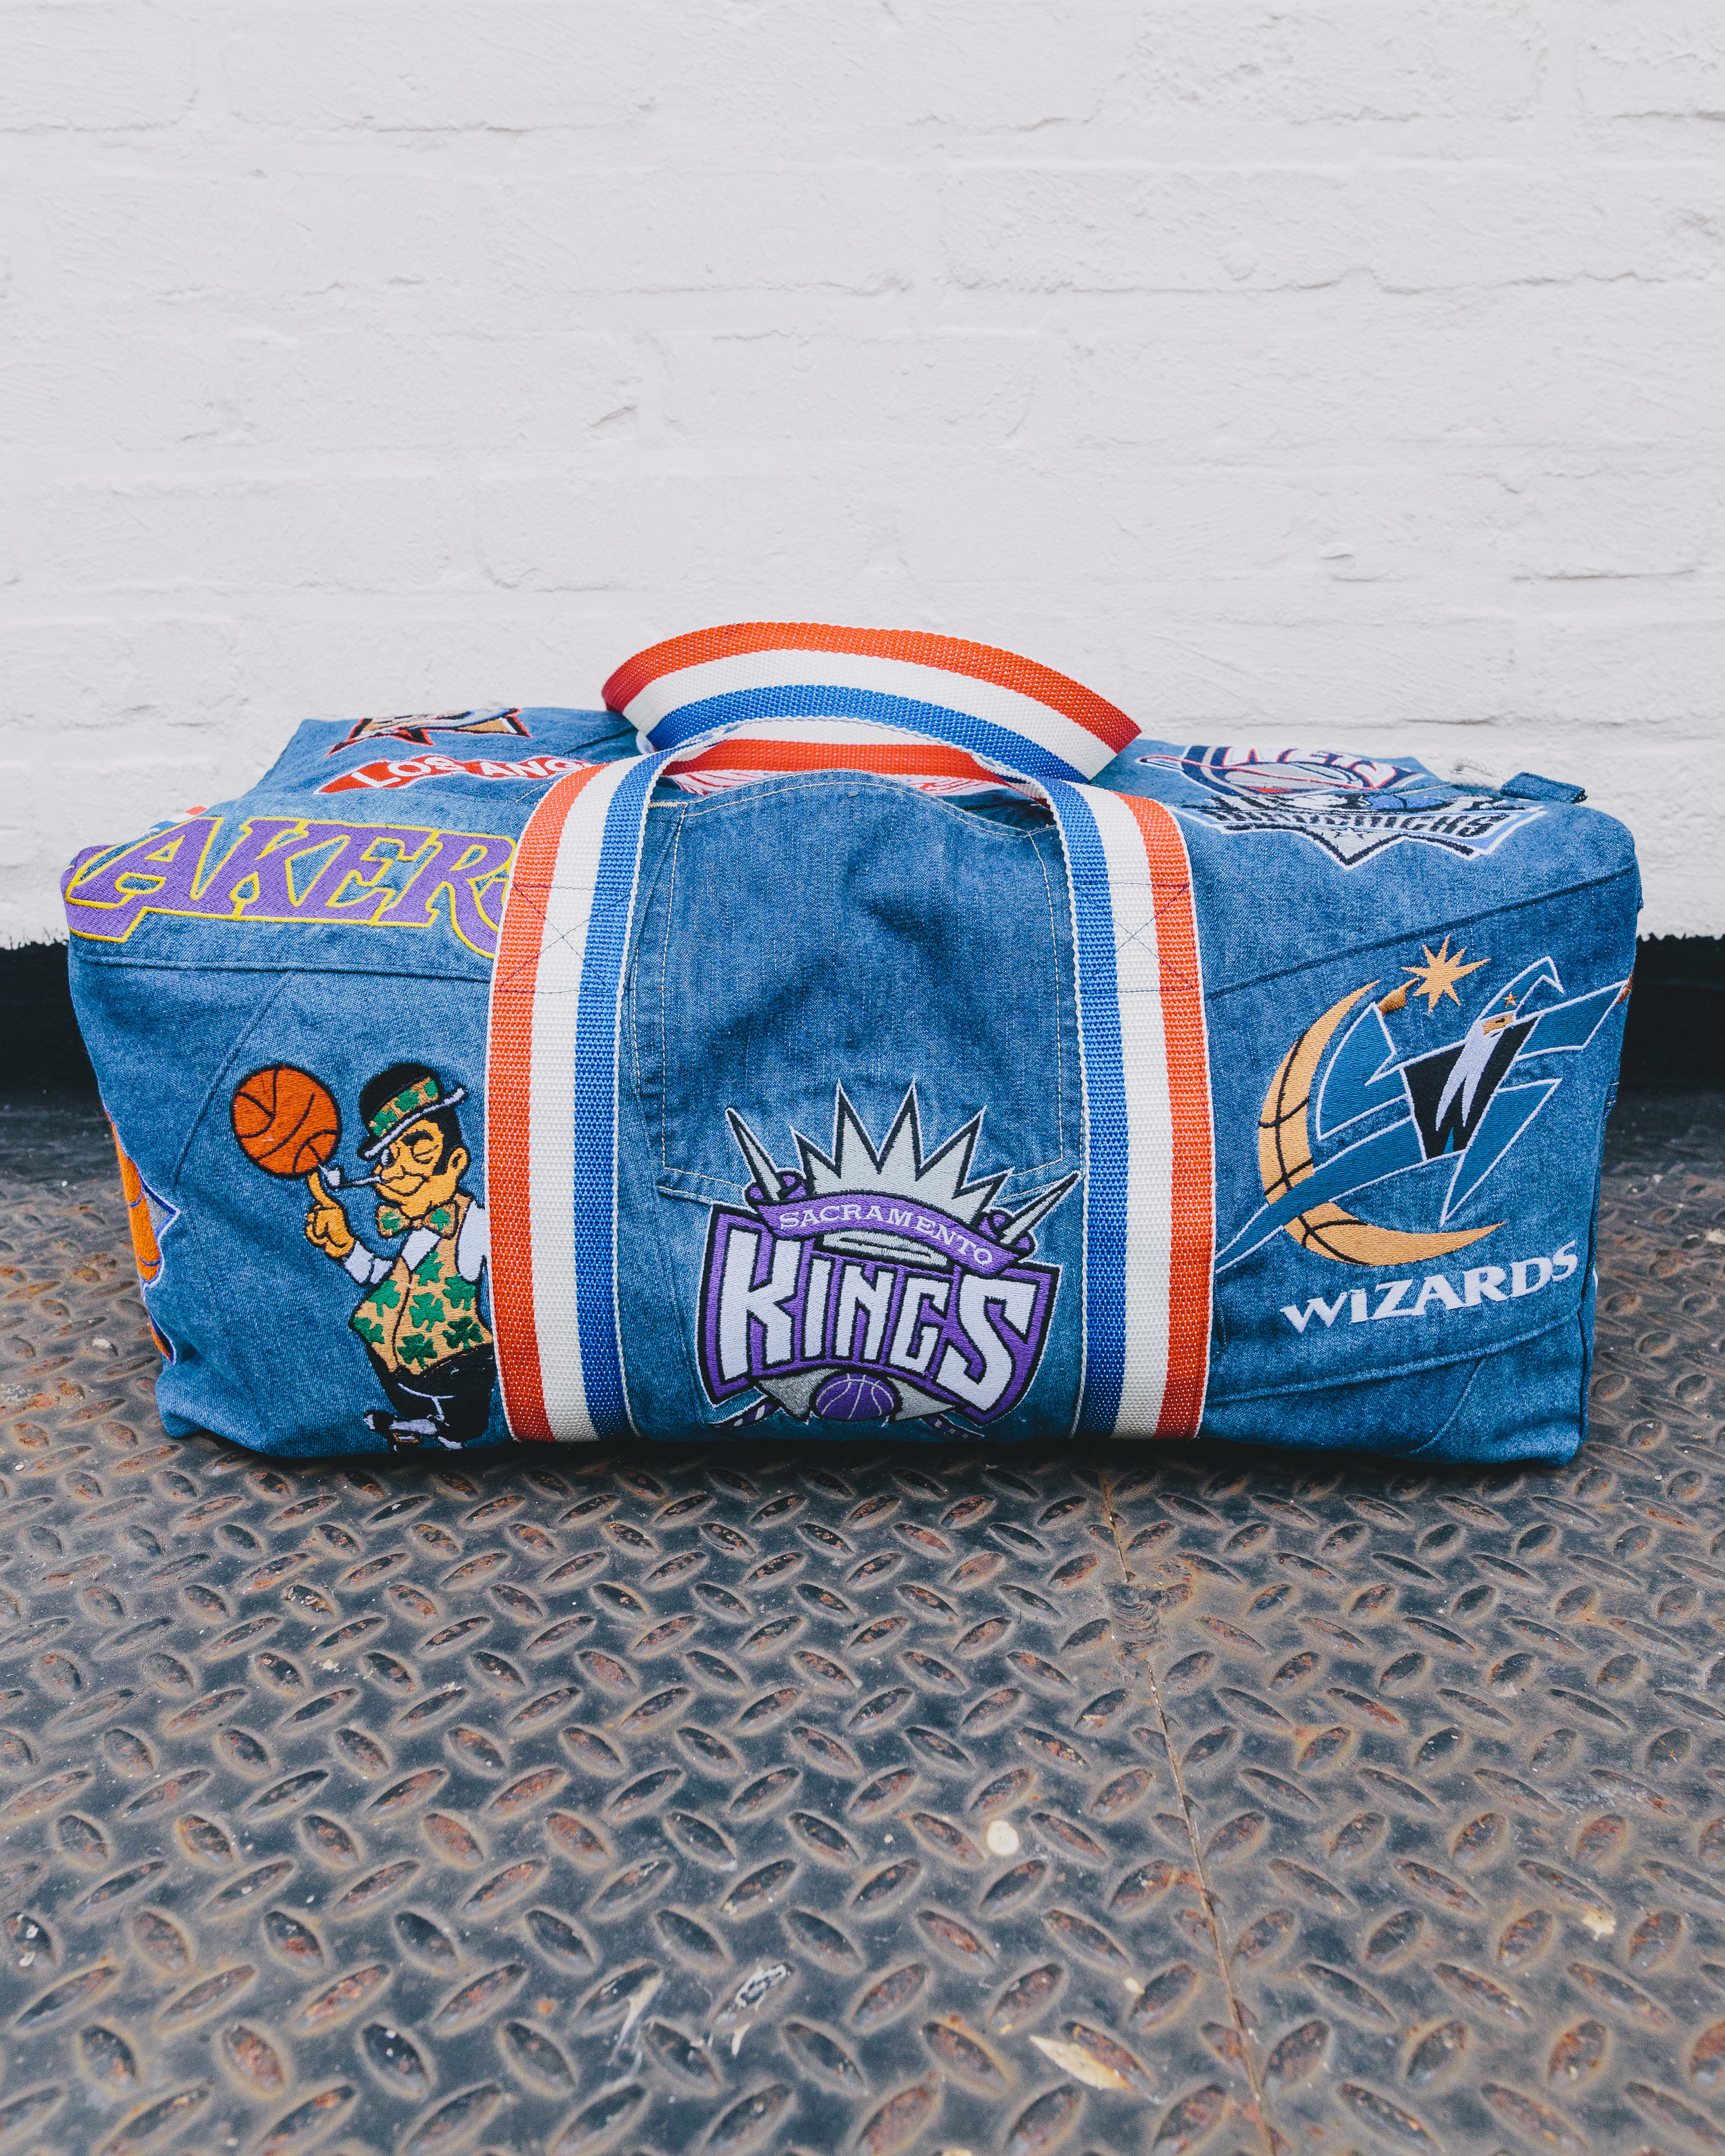 NBA Duffel - Made from Vintage UNK Denim Jeans patch-worked together.